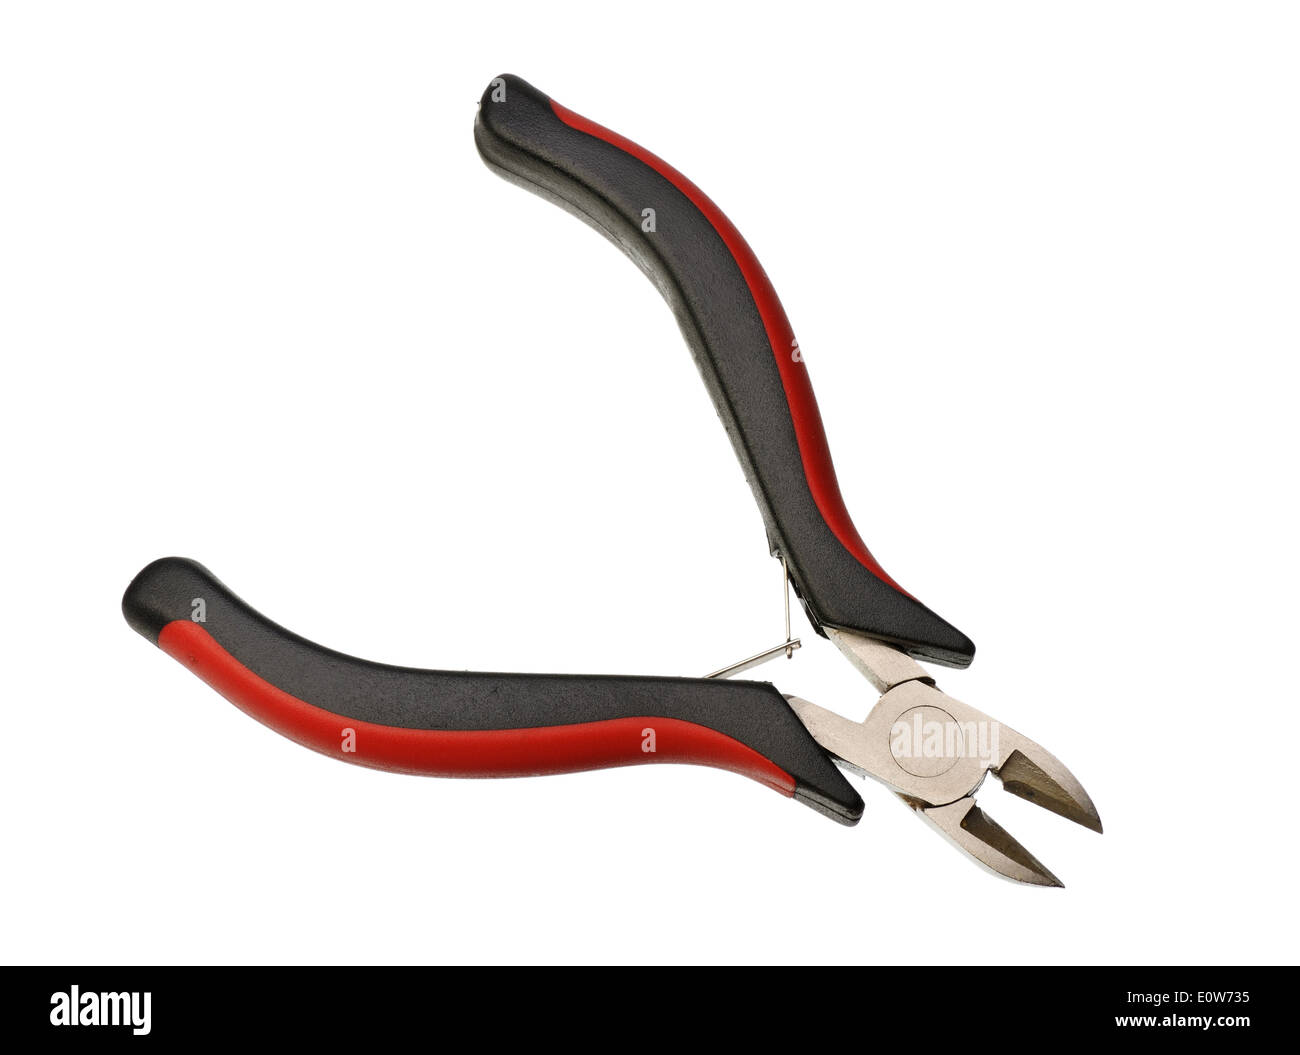 Side Cutters Stock Photos & Side Cutters Stock Images - Alamy